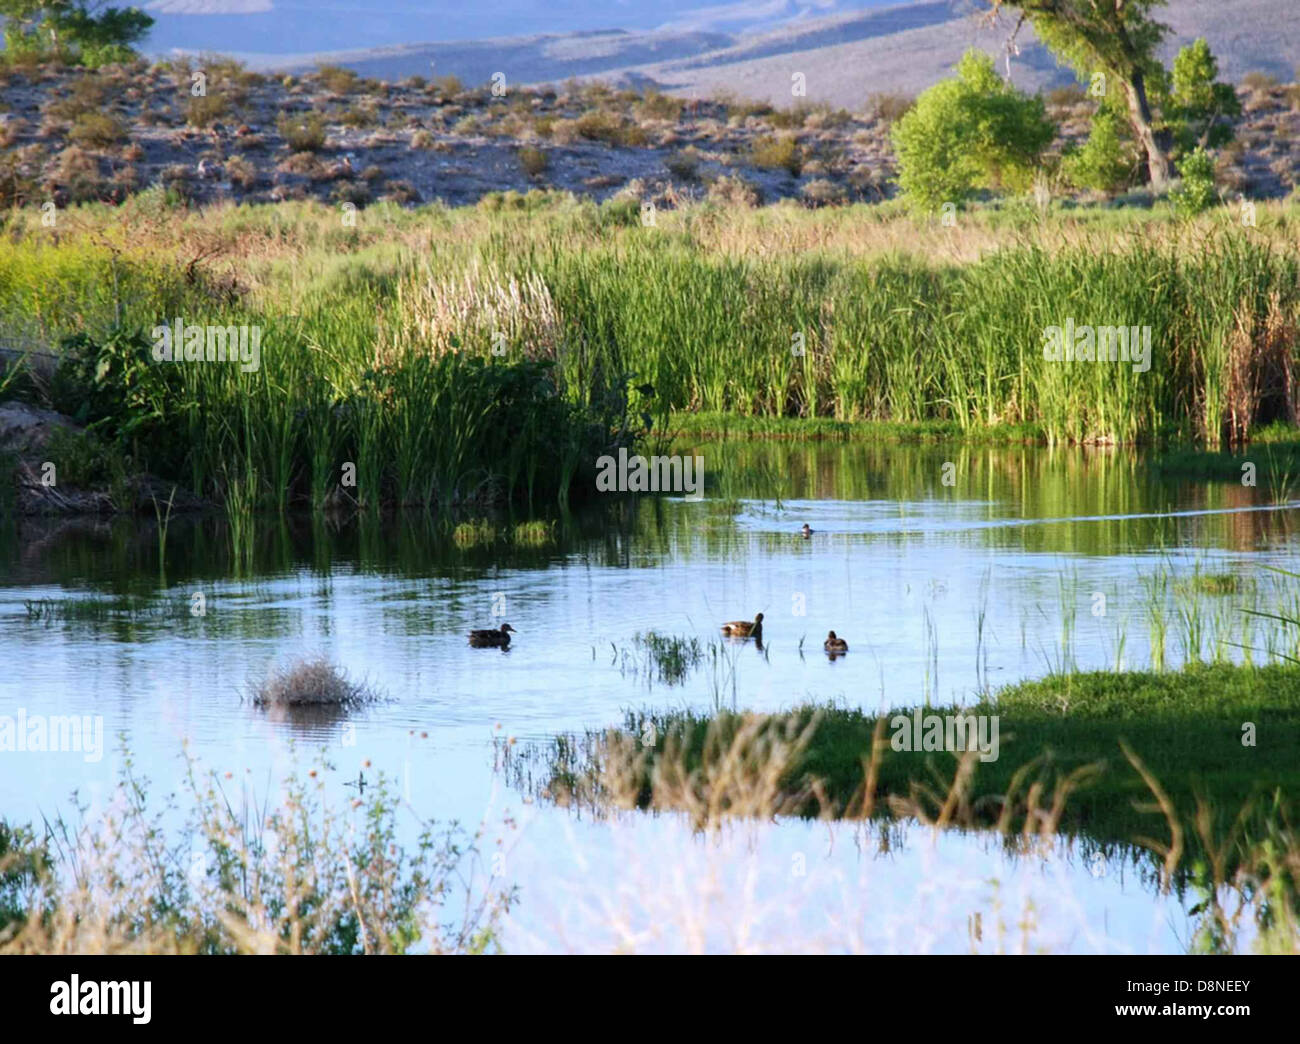 Waterfowl take advantage of the peaceful habitat. - Stock Image